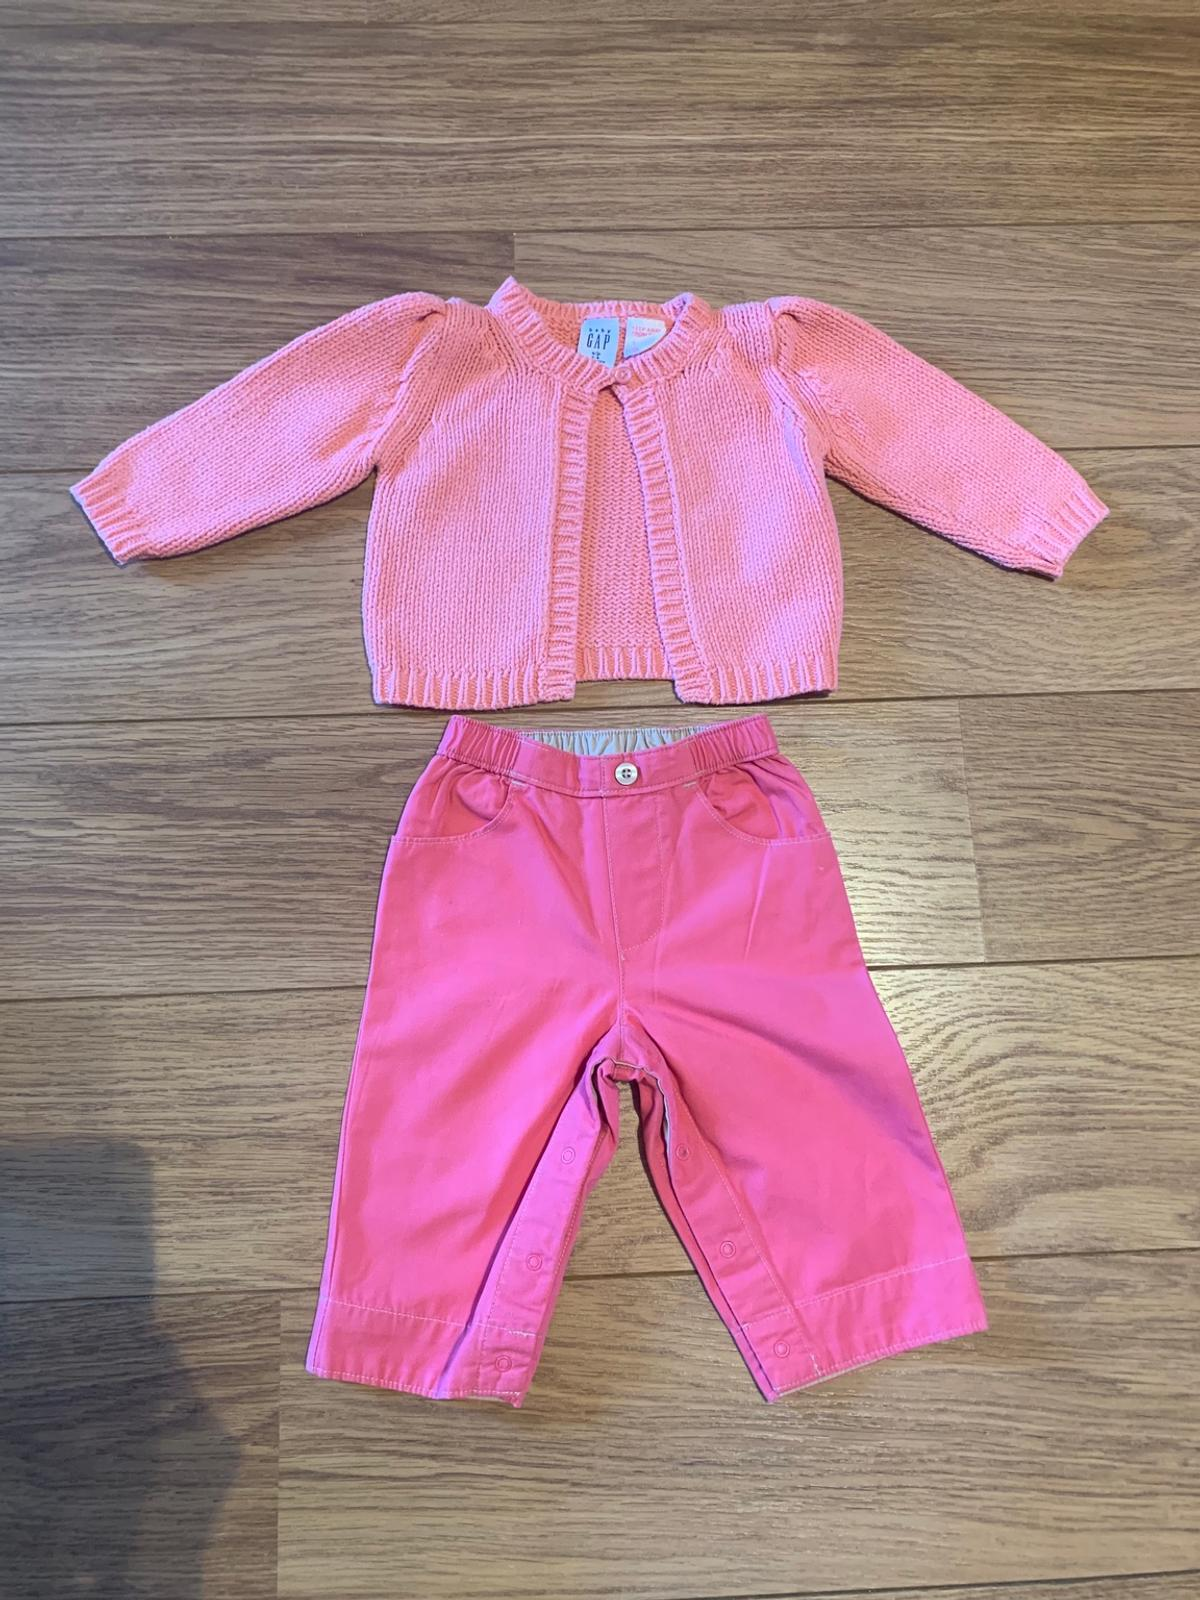 Trousers have poppers down inside legs for easy nappy changes. Excellent condition. From smoke and pet free home. Please see the other items that I am selling as I am having a huge clear out.